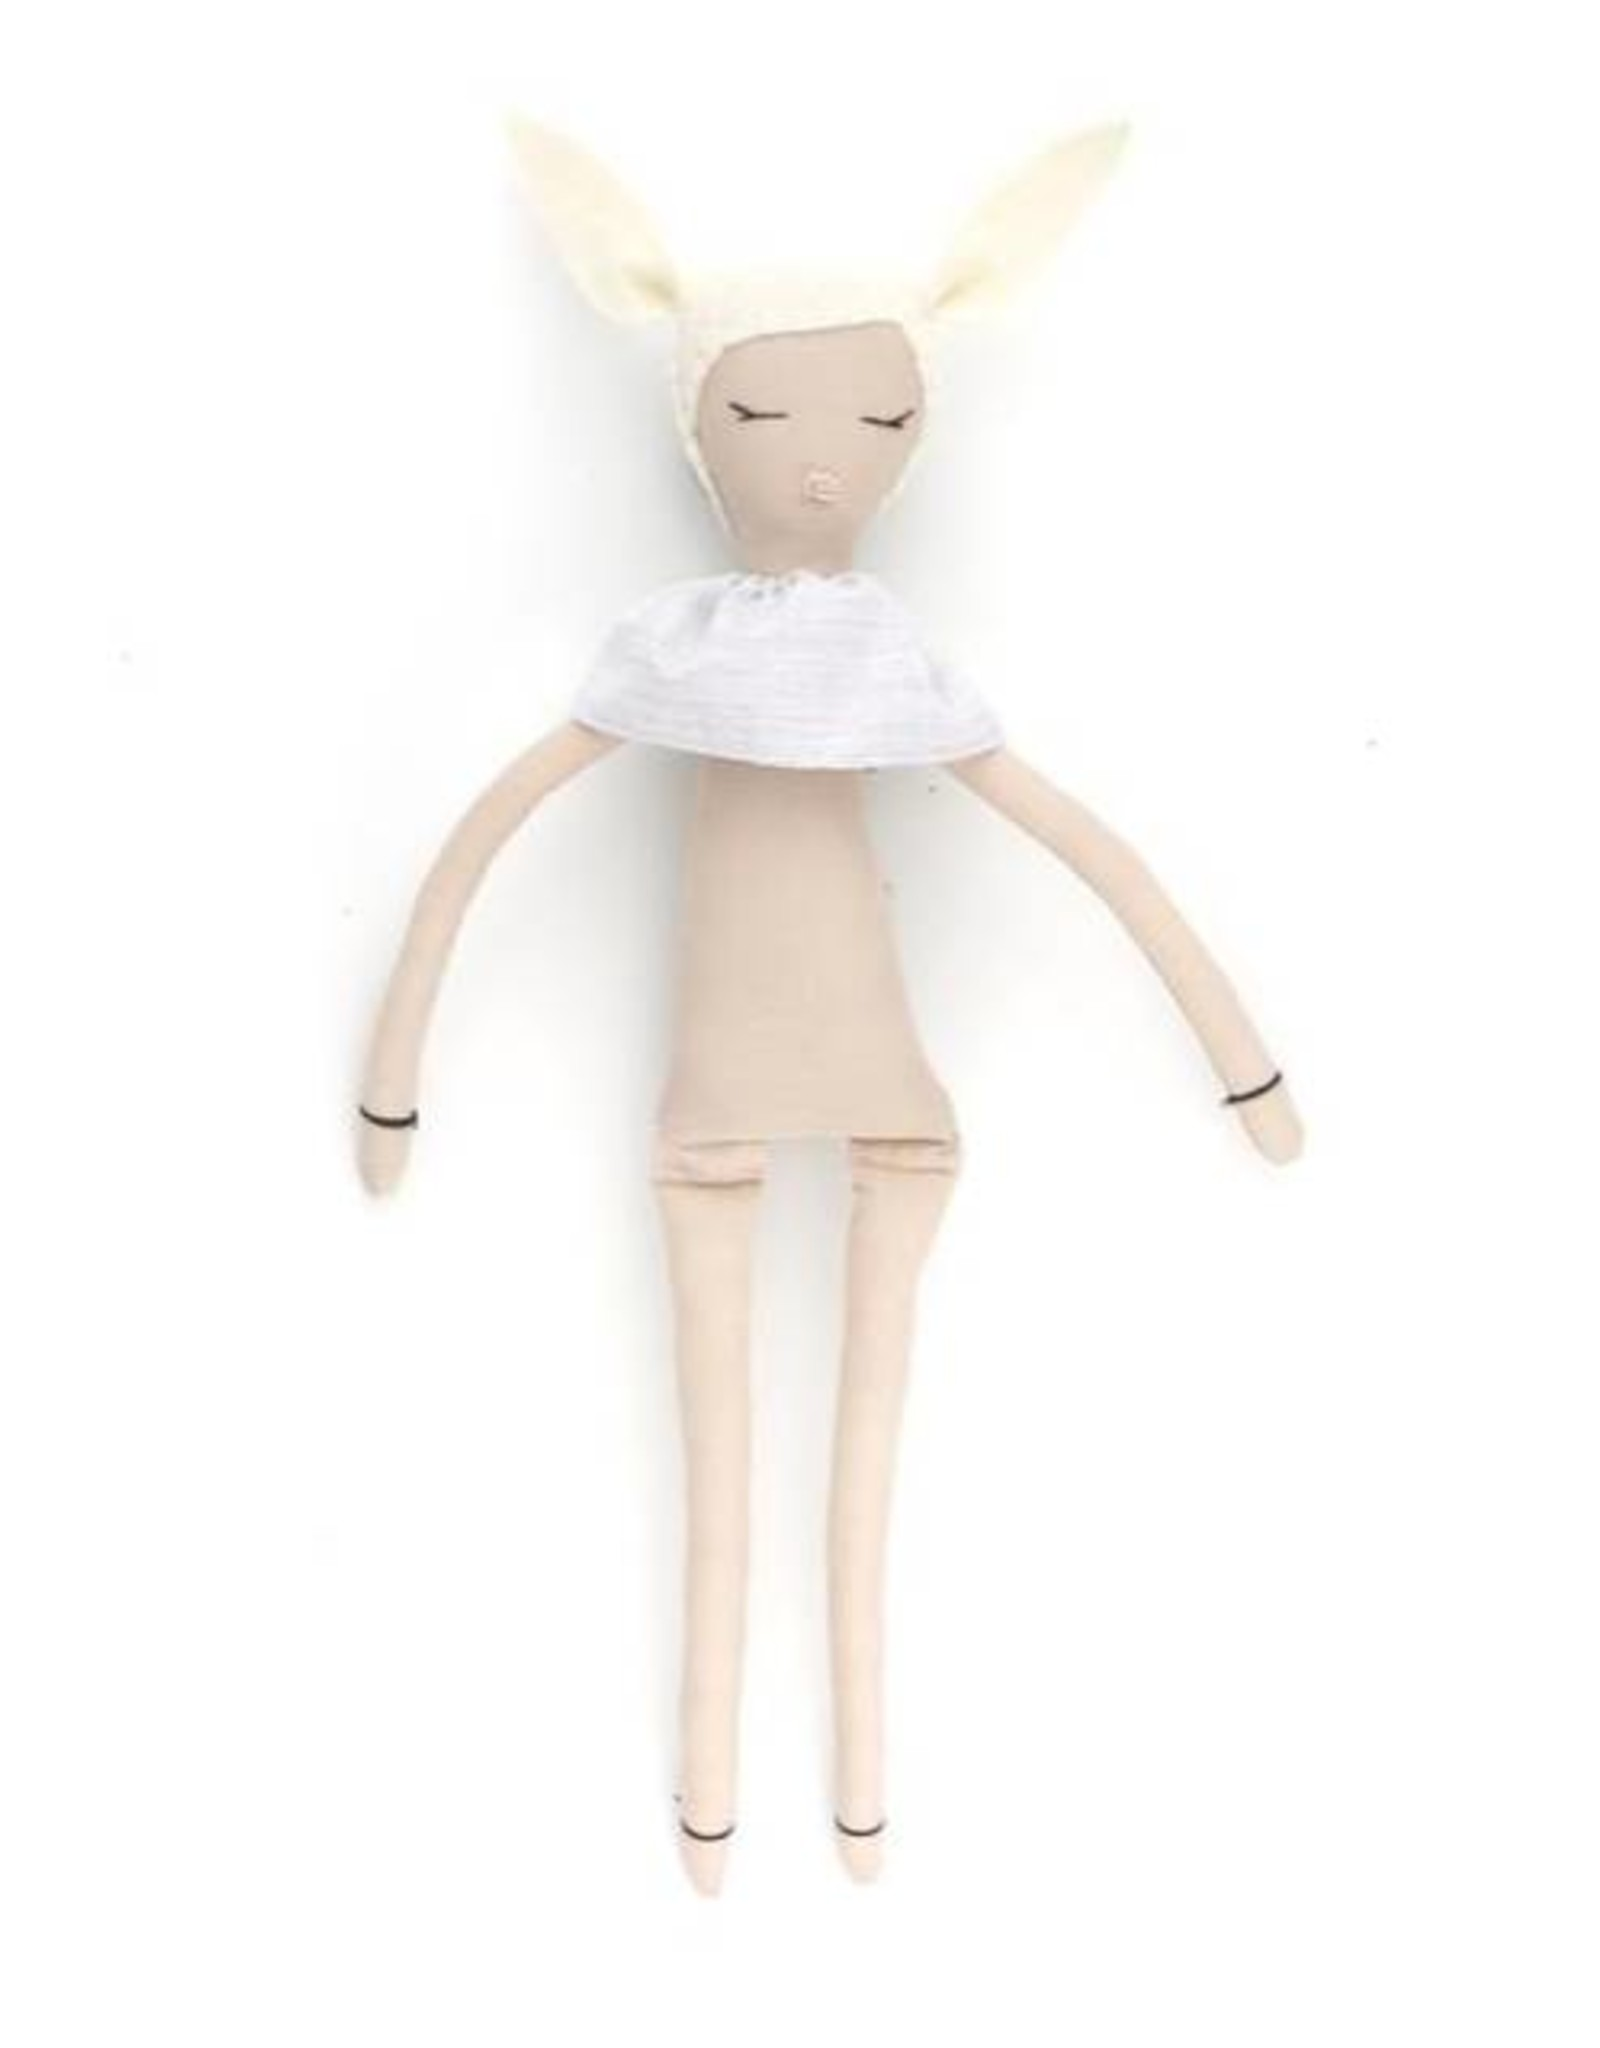 Dumye Tiny Foot Petite Doll - Dusty Blue